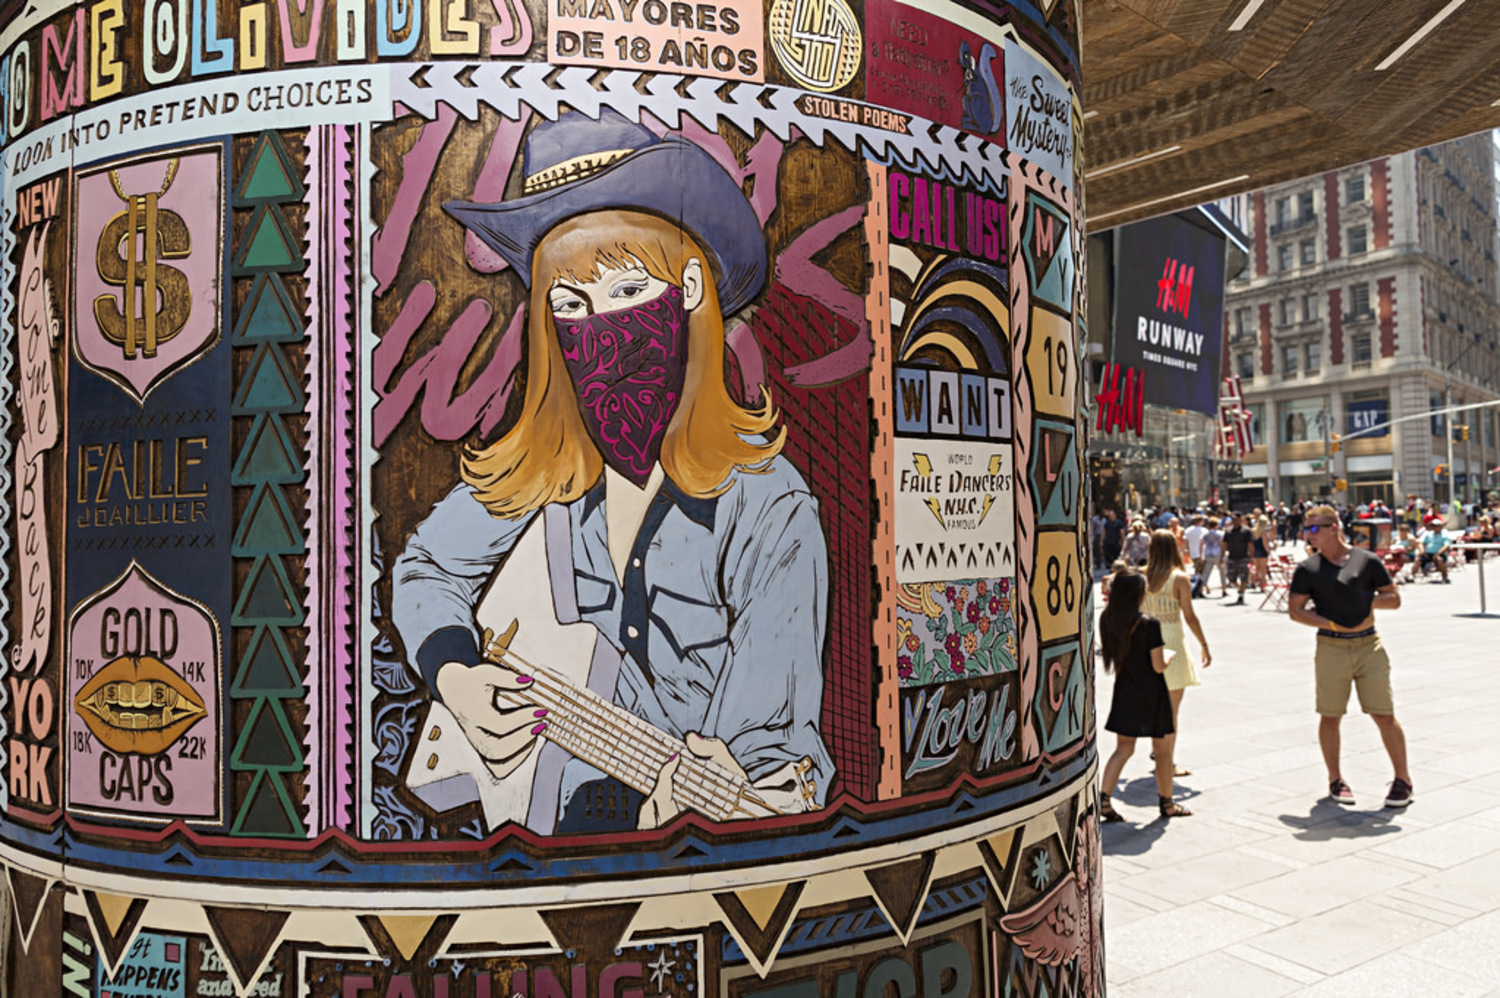 FAILE: Wishing on You | FAILE: Wishing on You August 17, 2015 - September 1, 2015  Brooklyn-based artist collaboration FAILE bring FAILE: Wishing on You, an installation reimagining Asian prayer wheels in the context of Times Square's kaleidoscopic history, to the Broadway plaza between 42nd and 43rd Streets.  Artists Patrick McNeil and Patrick Miller are using this piece, their largest to date, to re-imagine Times Square - a sacred American landscape known both for bright lights and the gathering of many communities.  In collaboration with Brooklyn Museum.    Photo courtesy of Ka-Man Tse for @TSqArts.